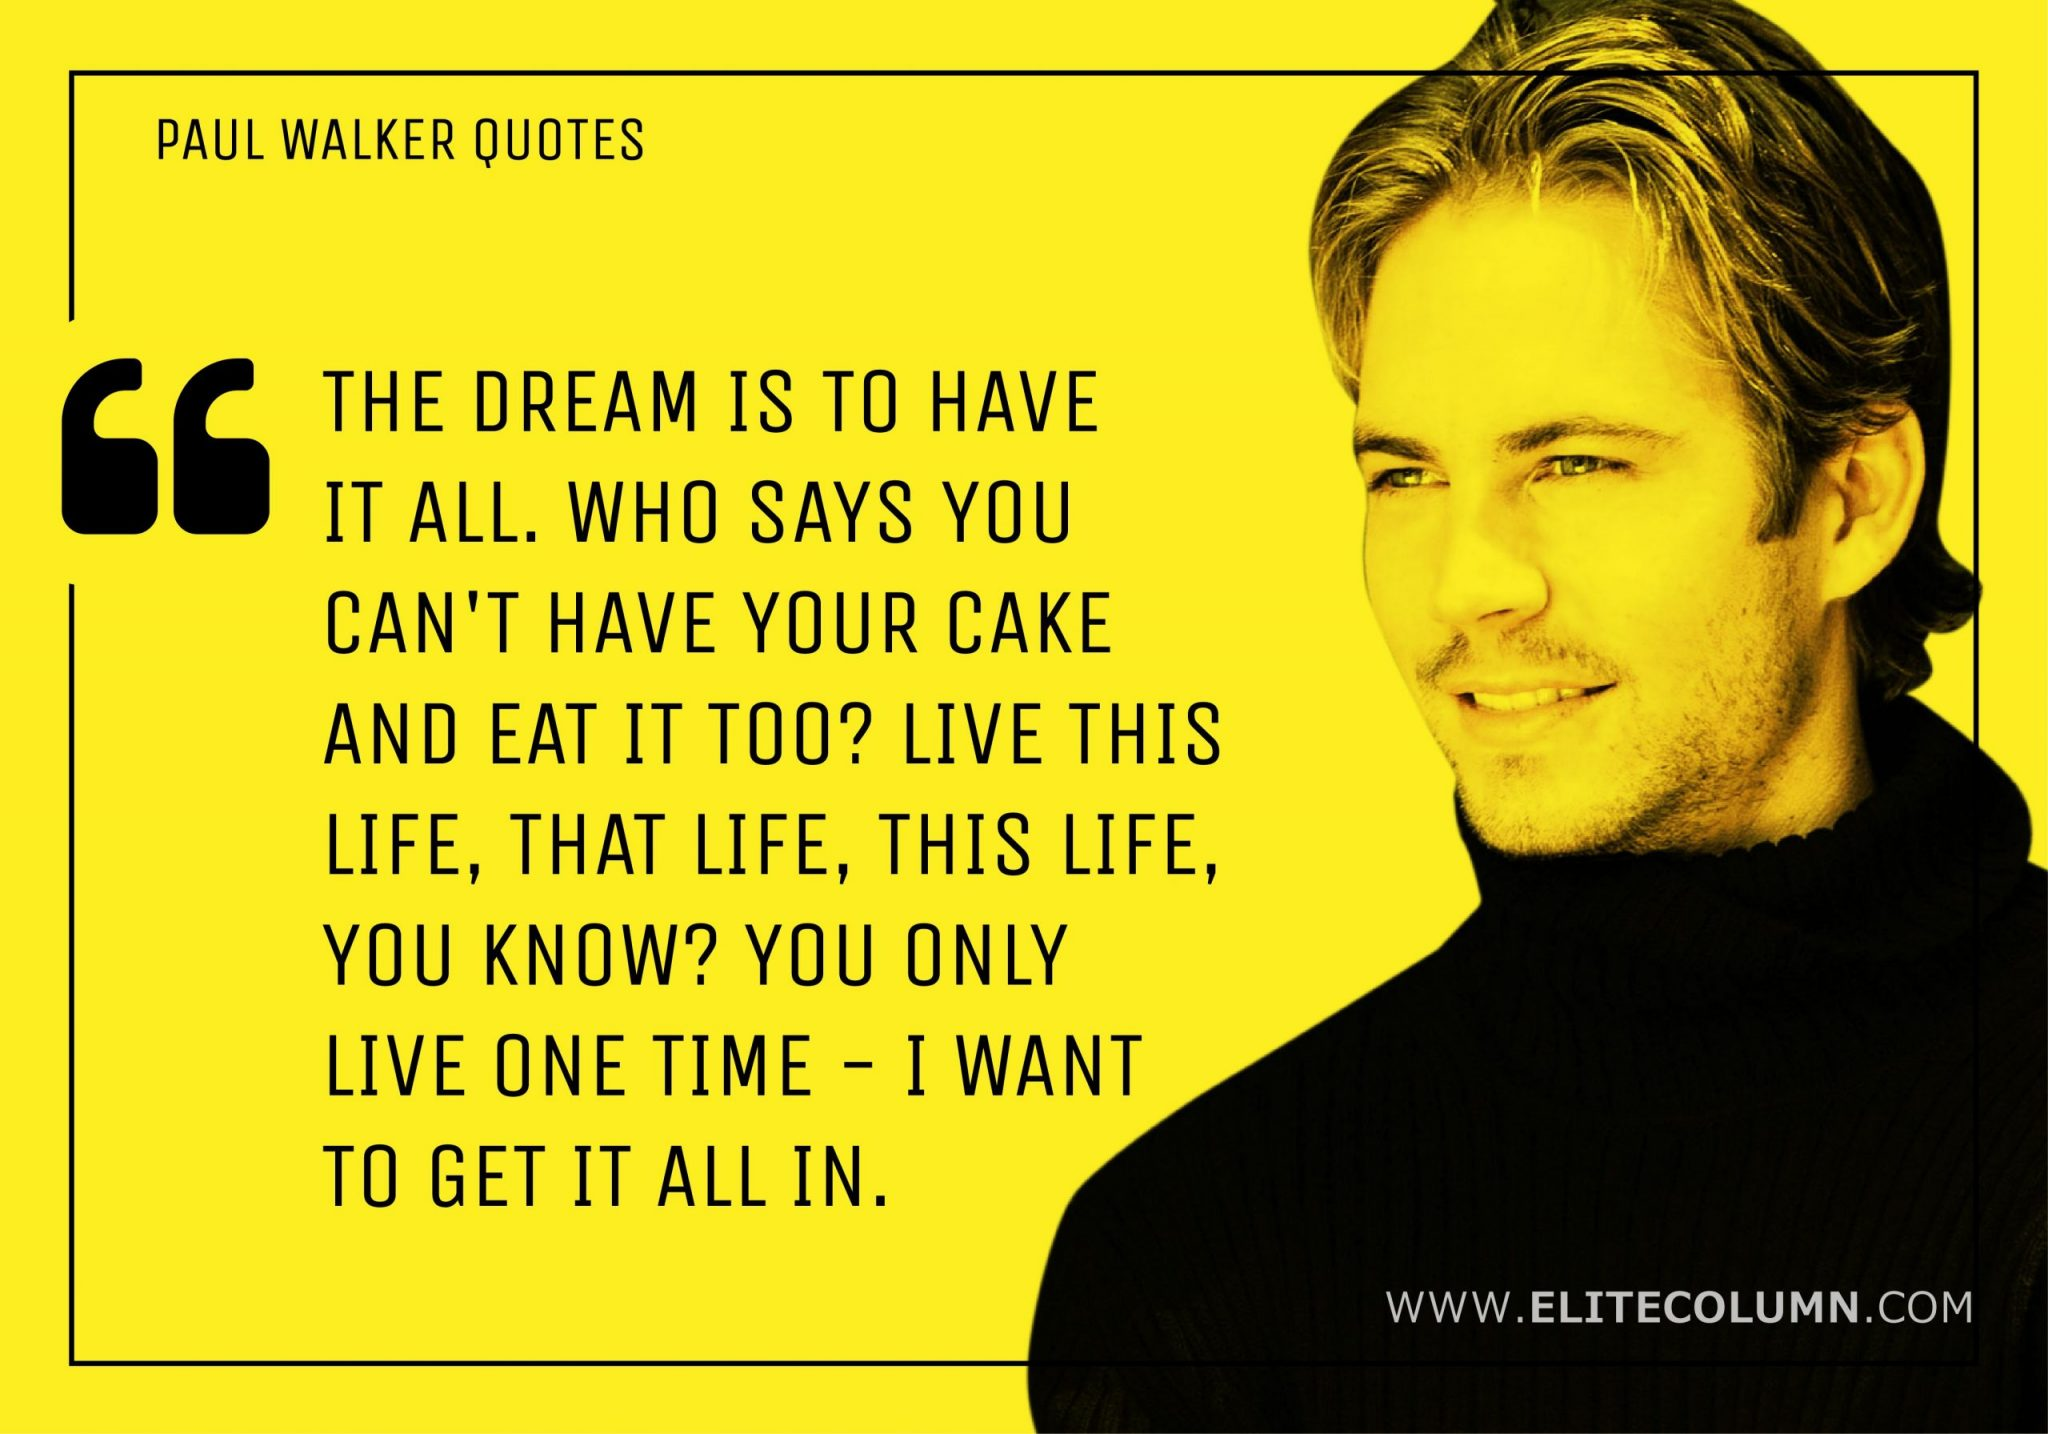 Paul Walker Quotes (11)